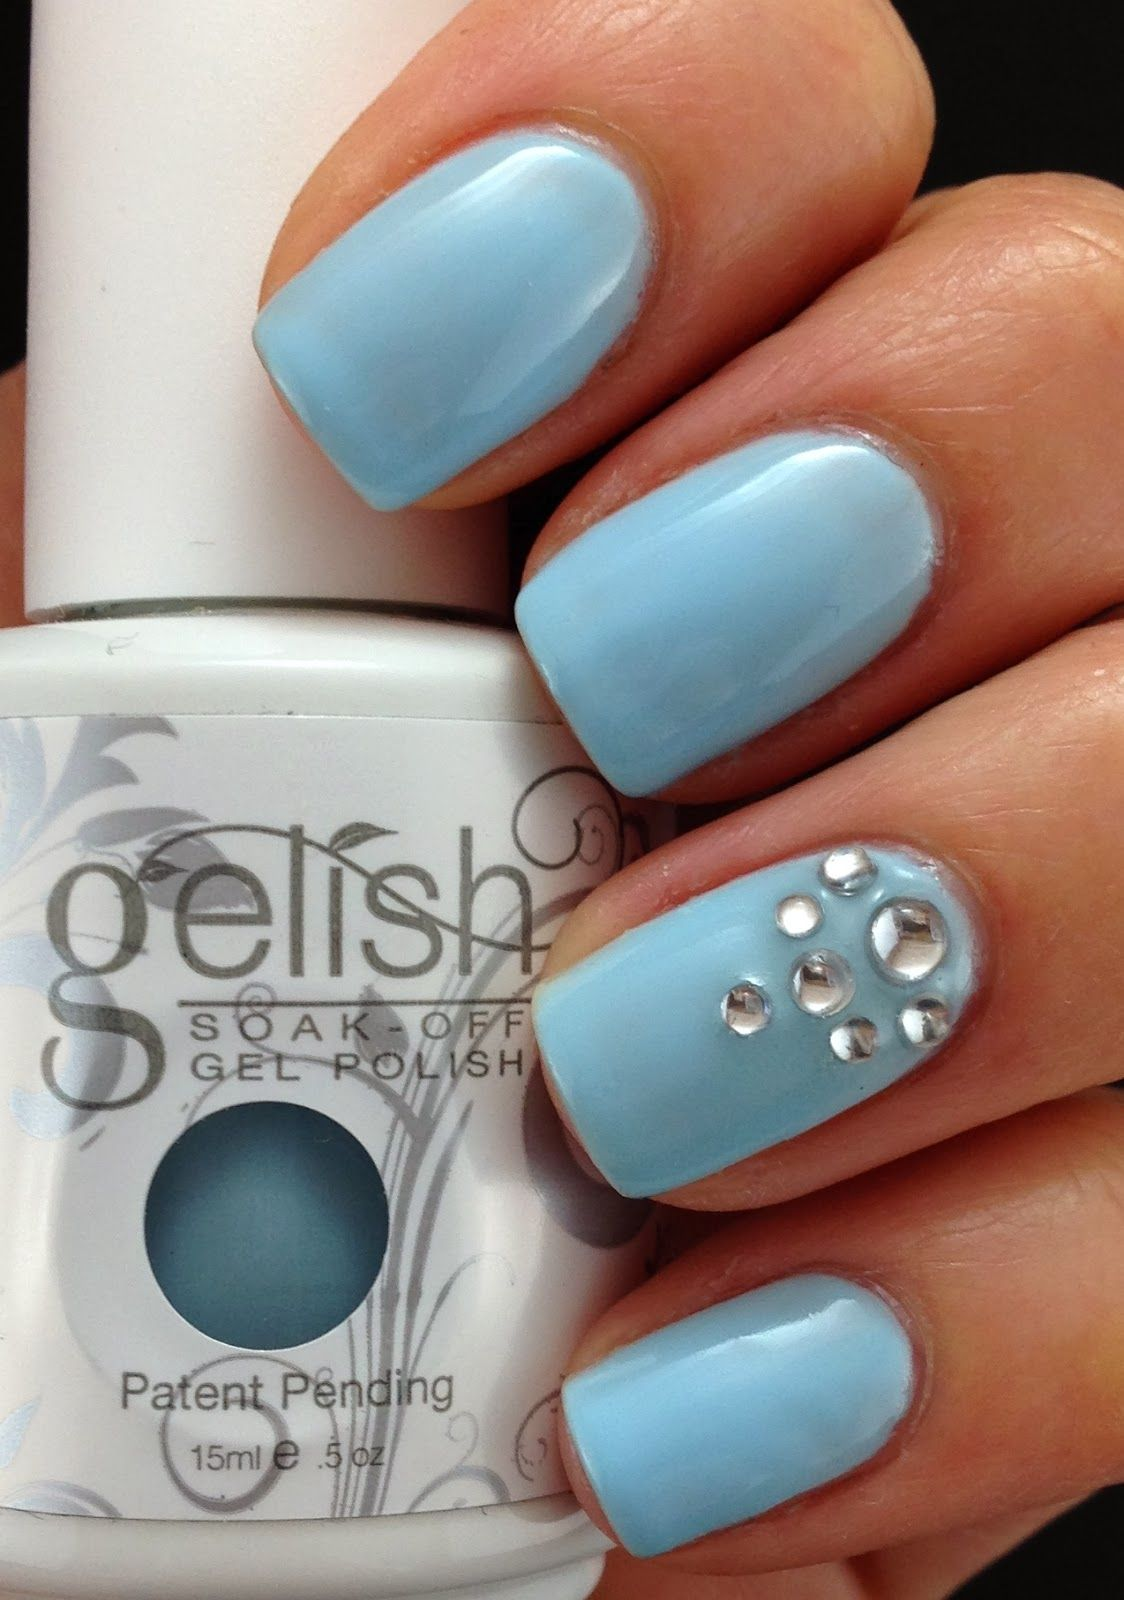 gleish once upon a dream collection - my one blue love #lslfunblog